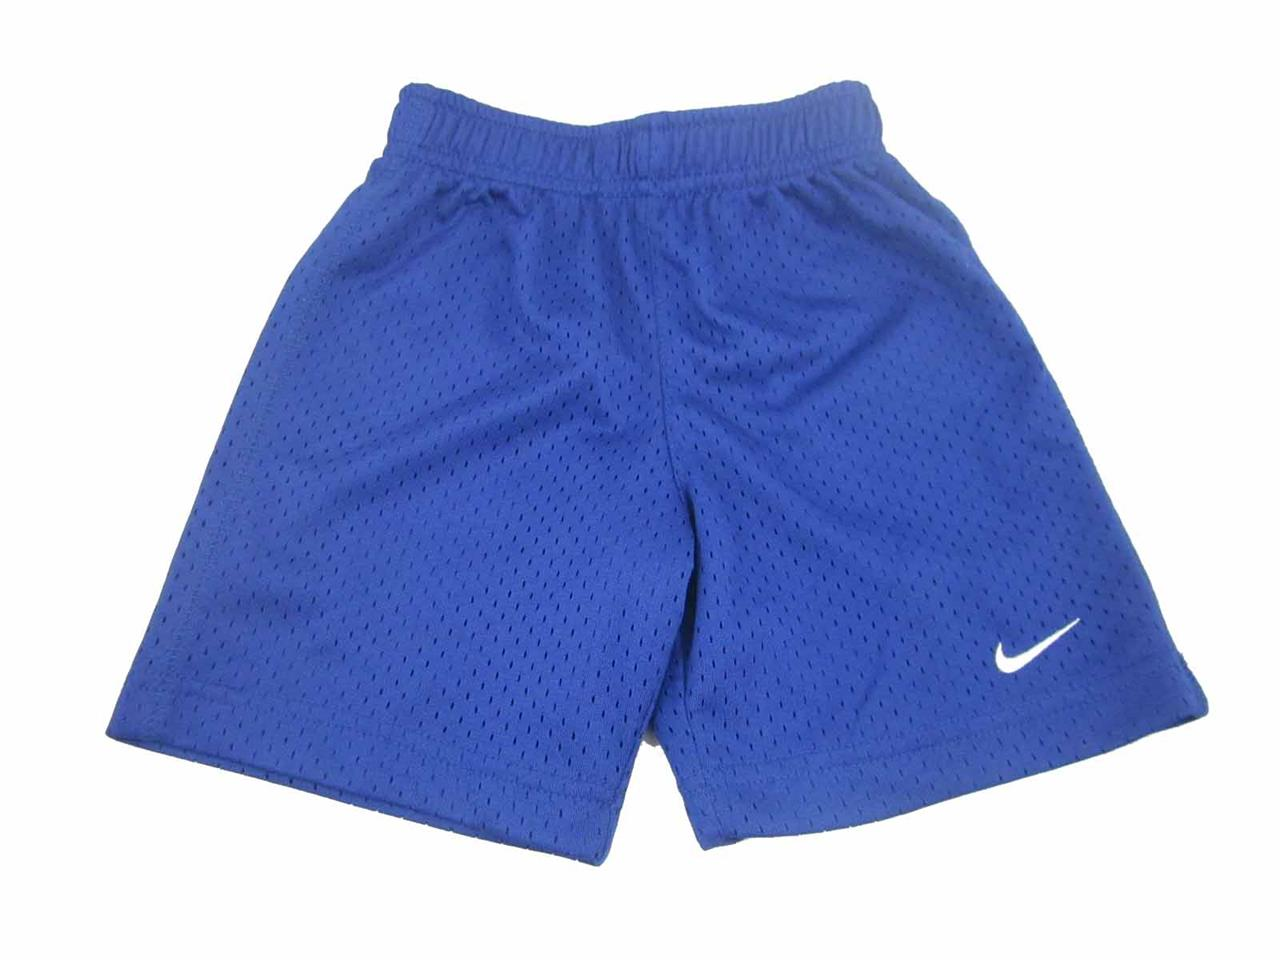 Boys Toddler Nike Mesh Athletic Dri Fit Shorts Black Blue ...